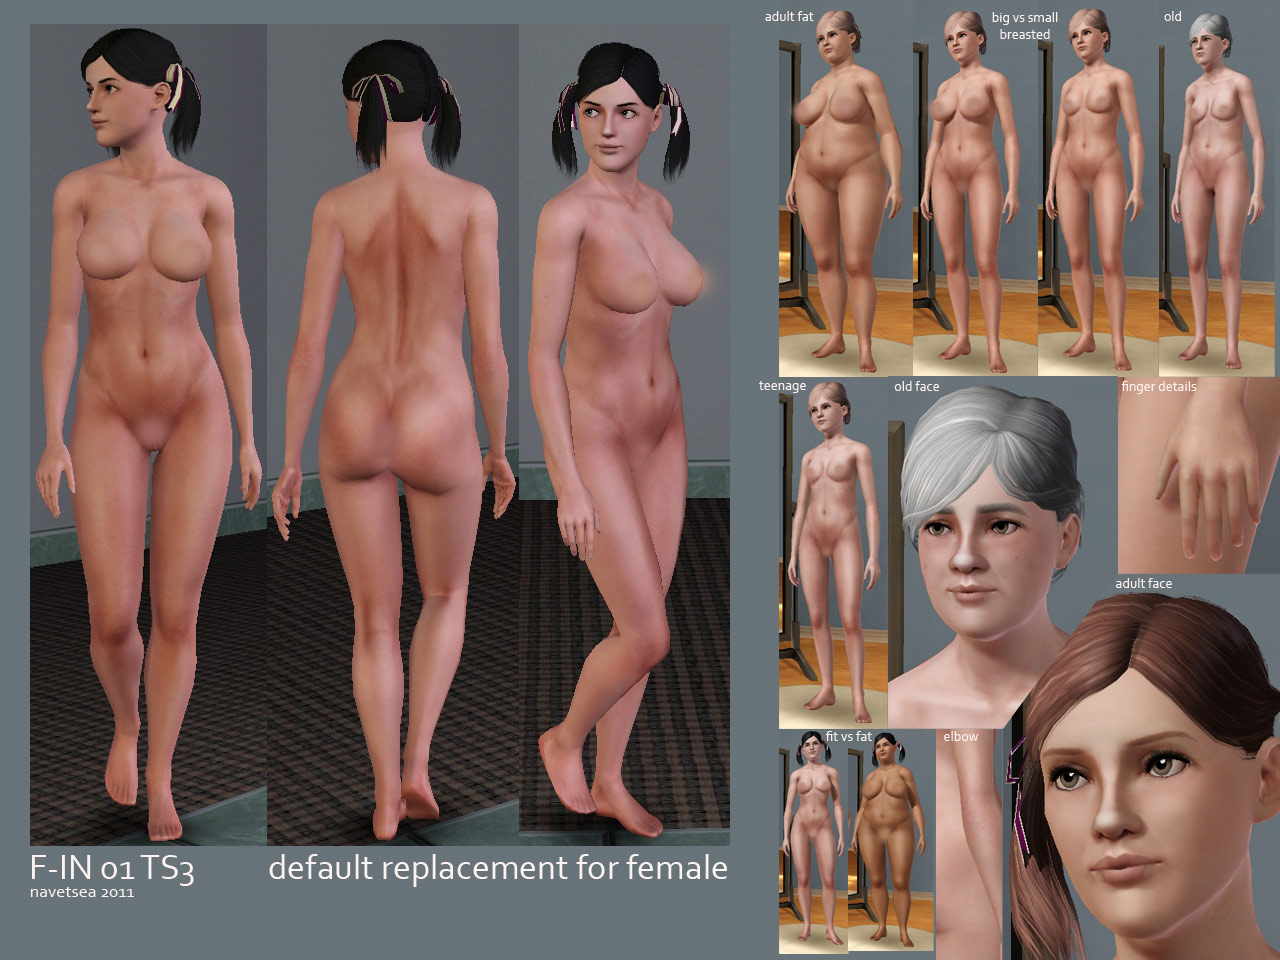 The sims 3 nude mode exploited galleries